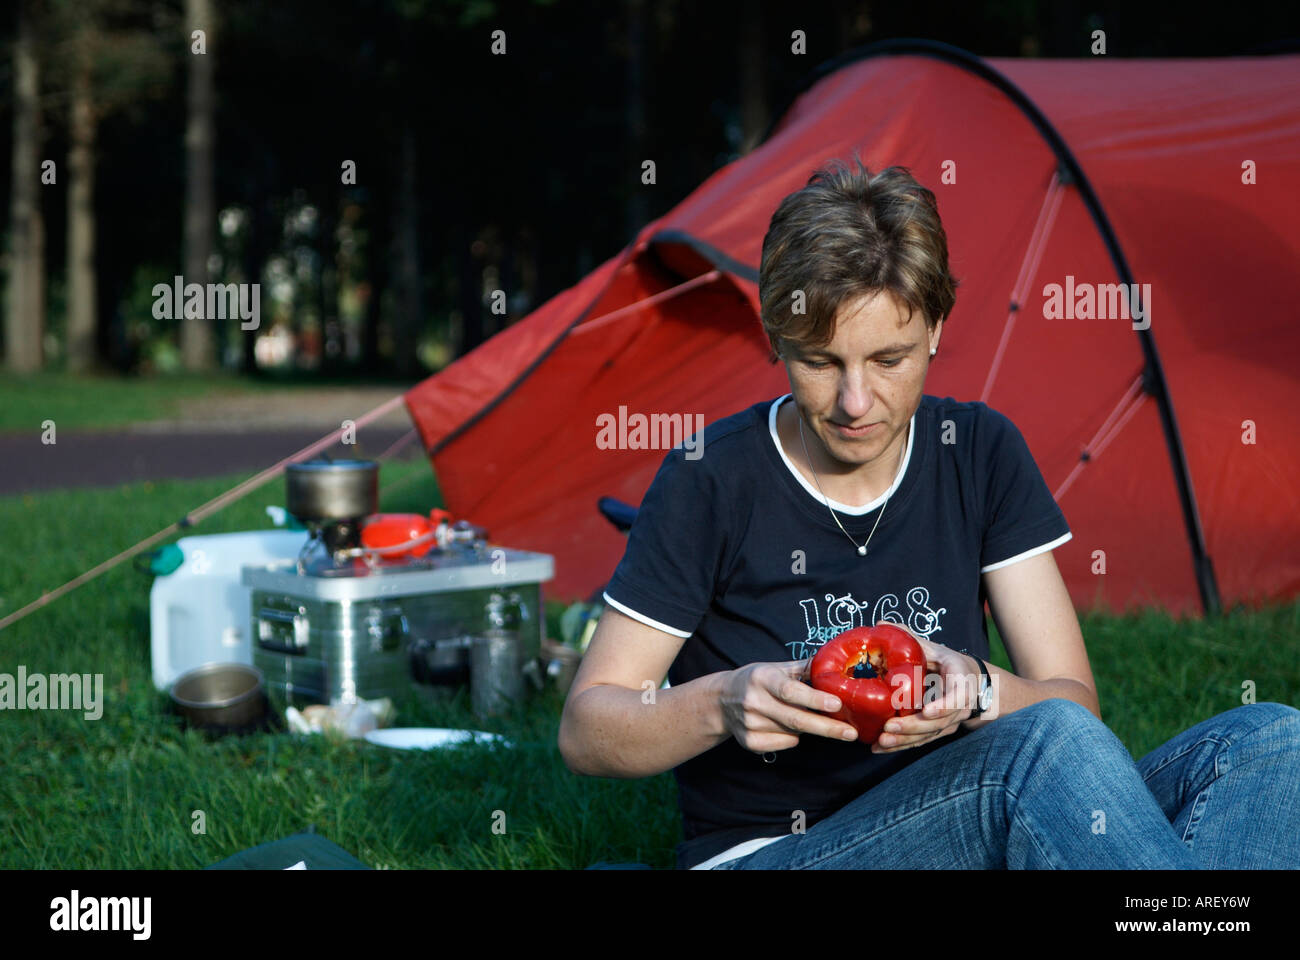 A woman preparing a meal in front of a red tent and some cooking equipment Mora Dalarna Sweden August 2007 - Stock Image